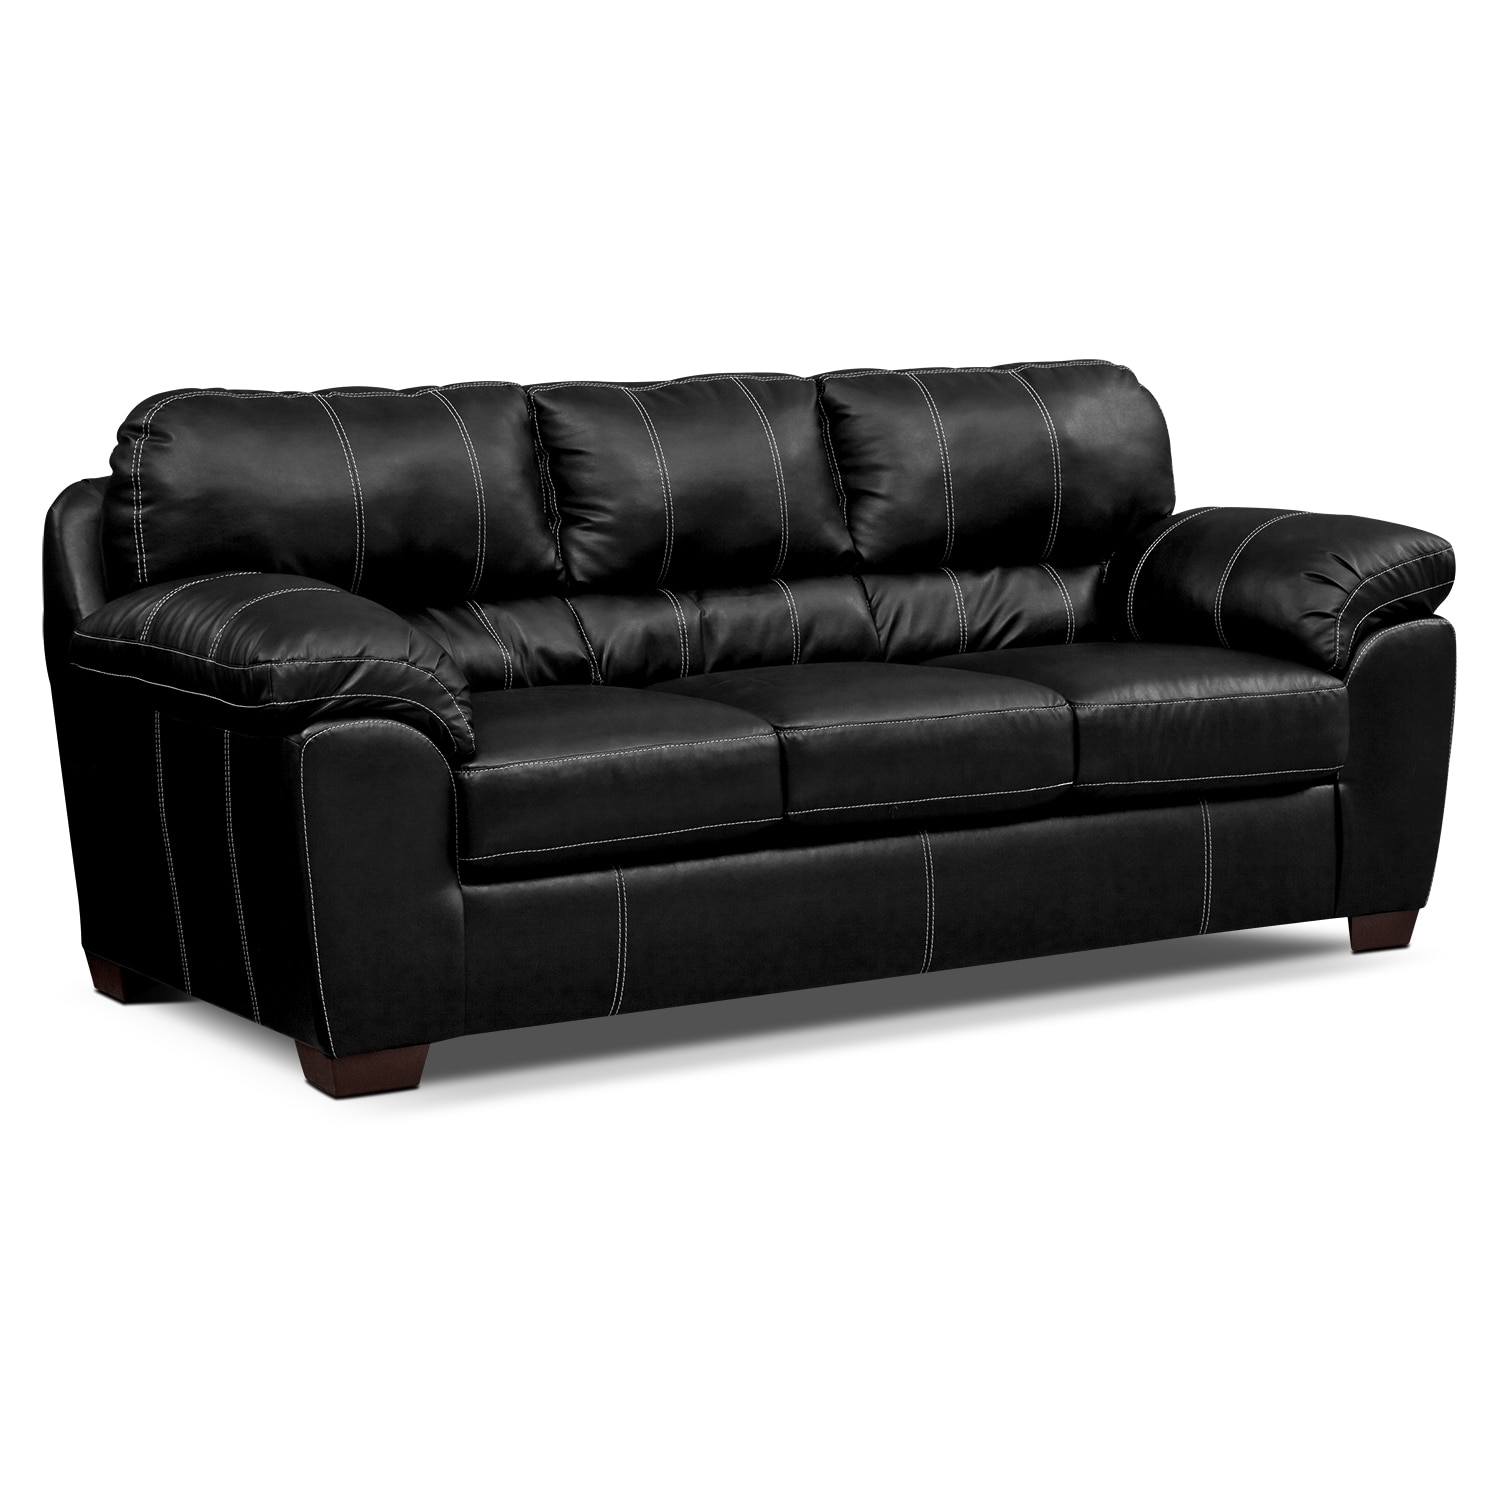 Colton Leather Queen Sleeper Sofa Value City Furniture : 289884 from valuecity.com size 1500 x 1500 jpeg 414kB